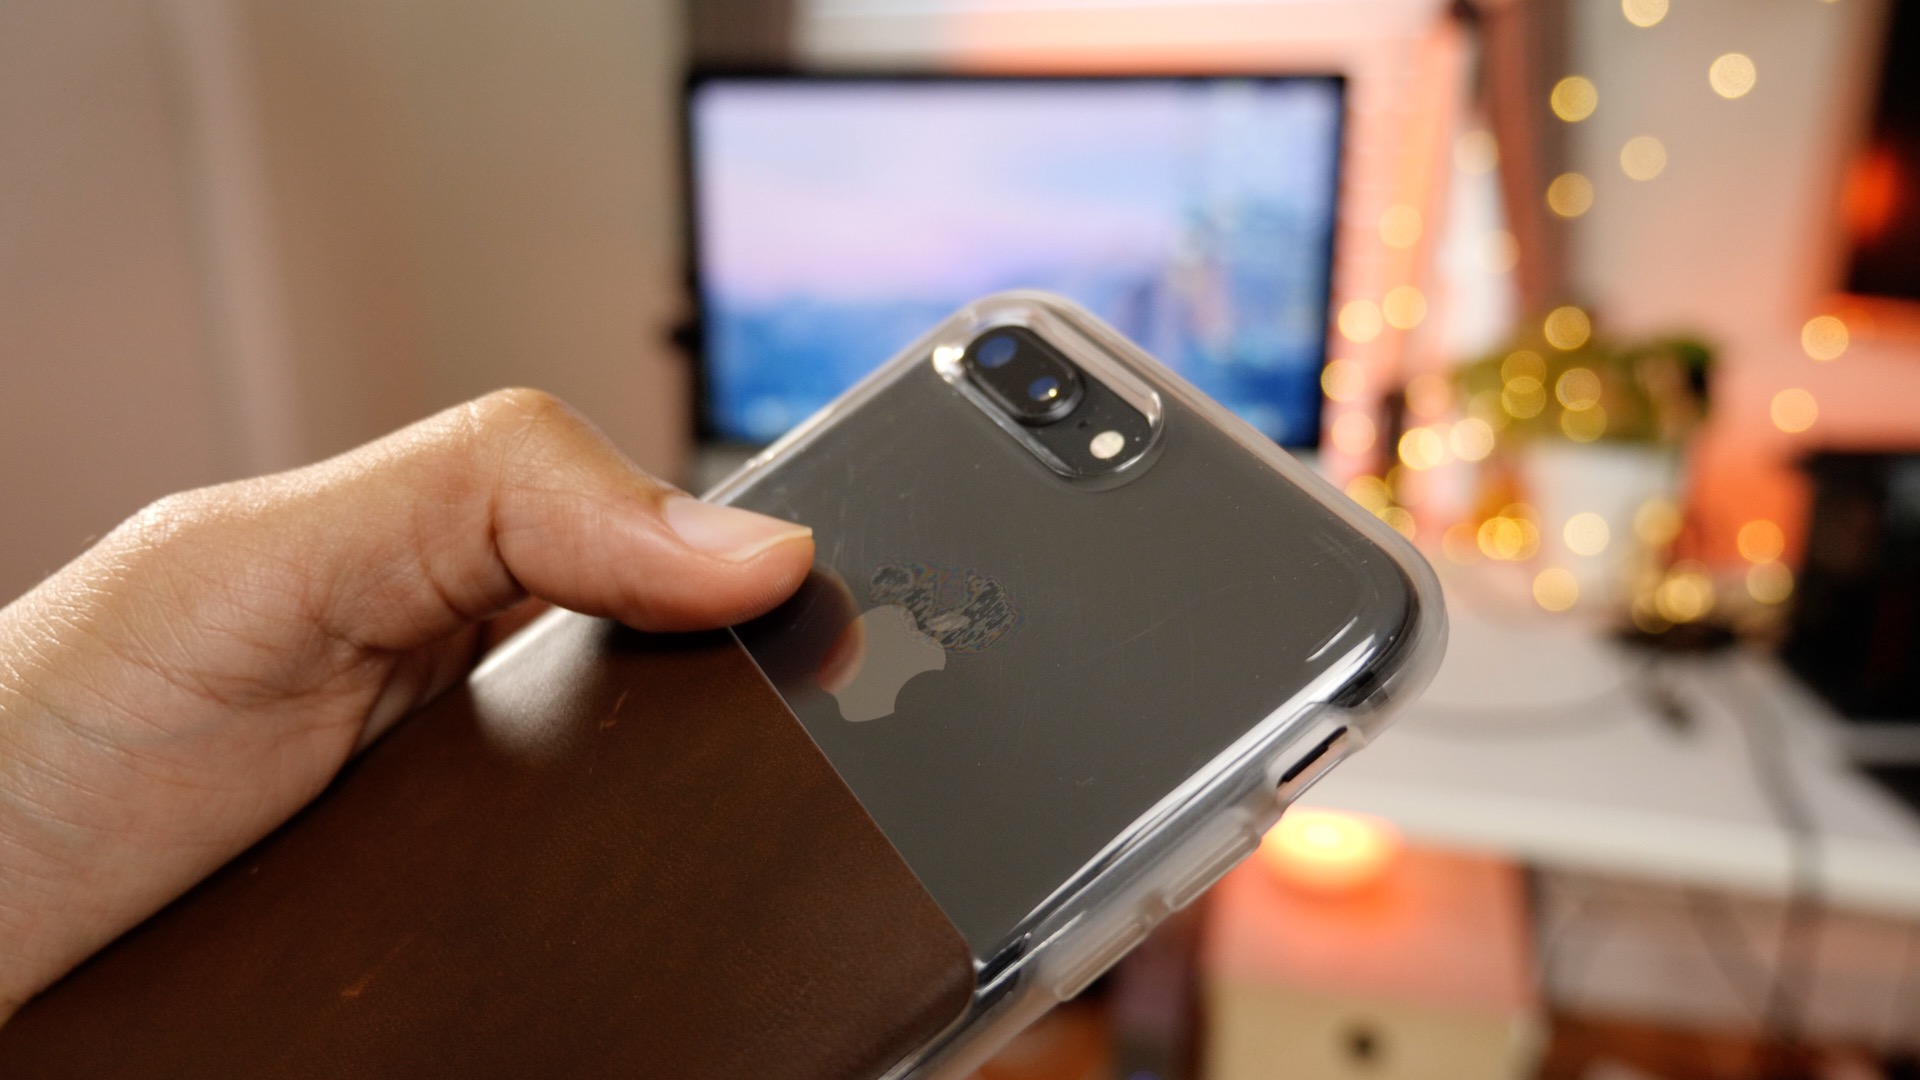 cheaper b075e 5af36 Hands-on: Nomad case options for iPhone 8 Plus [Video] - 9to5Mac